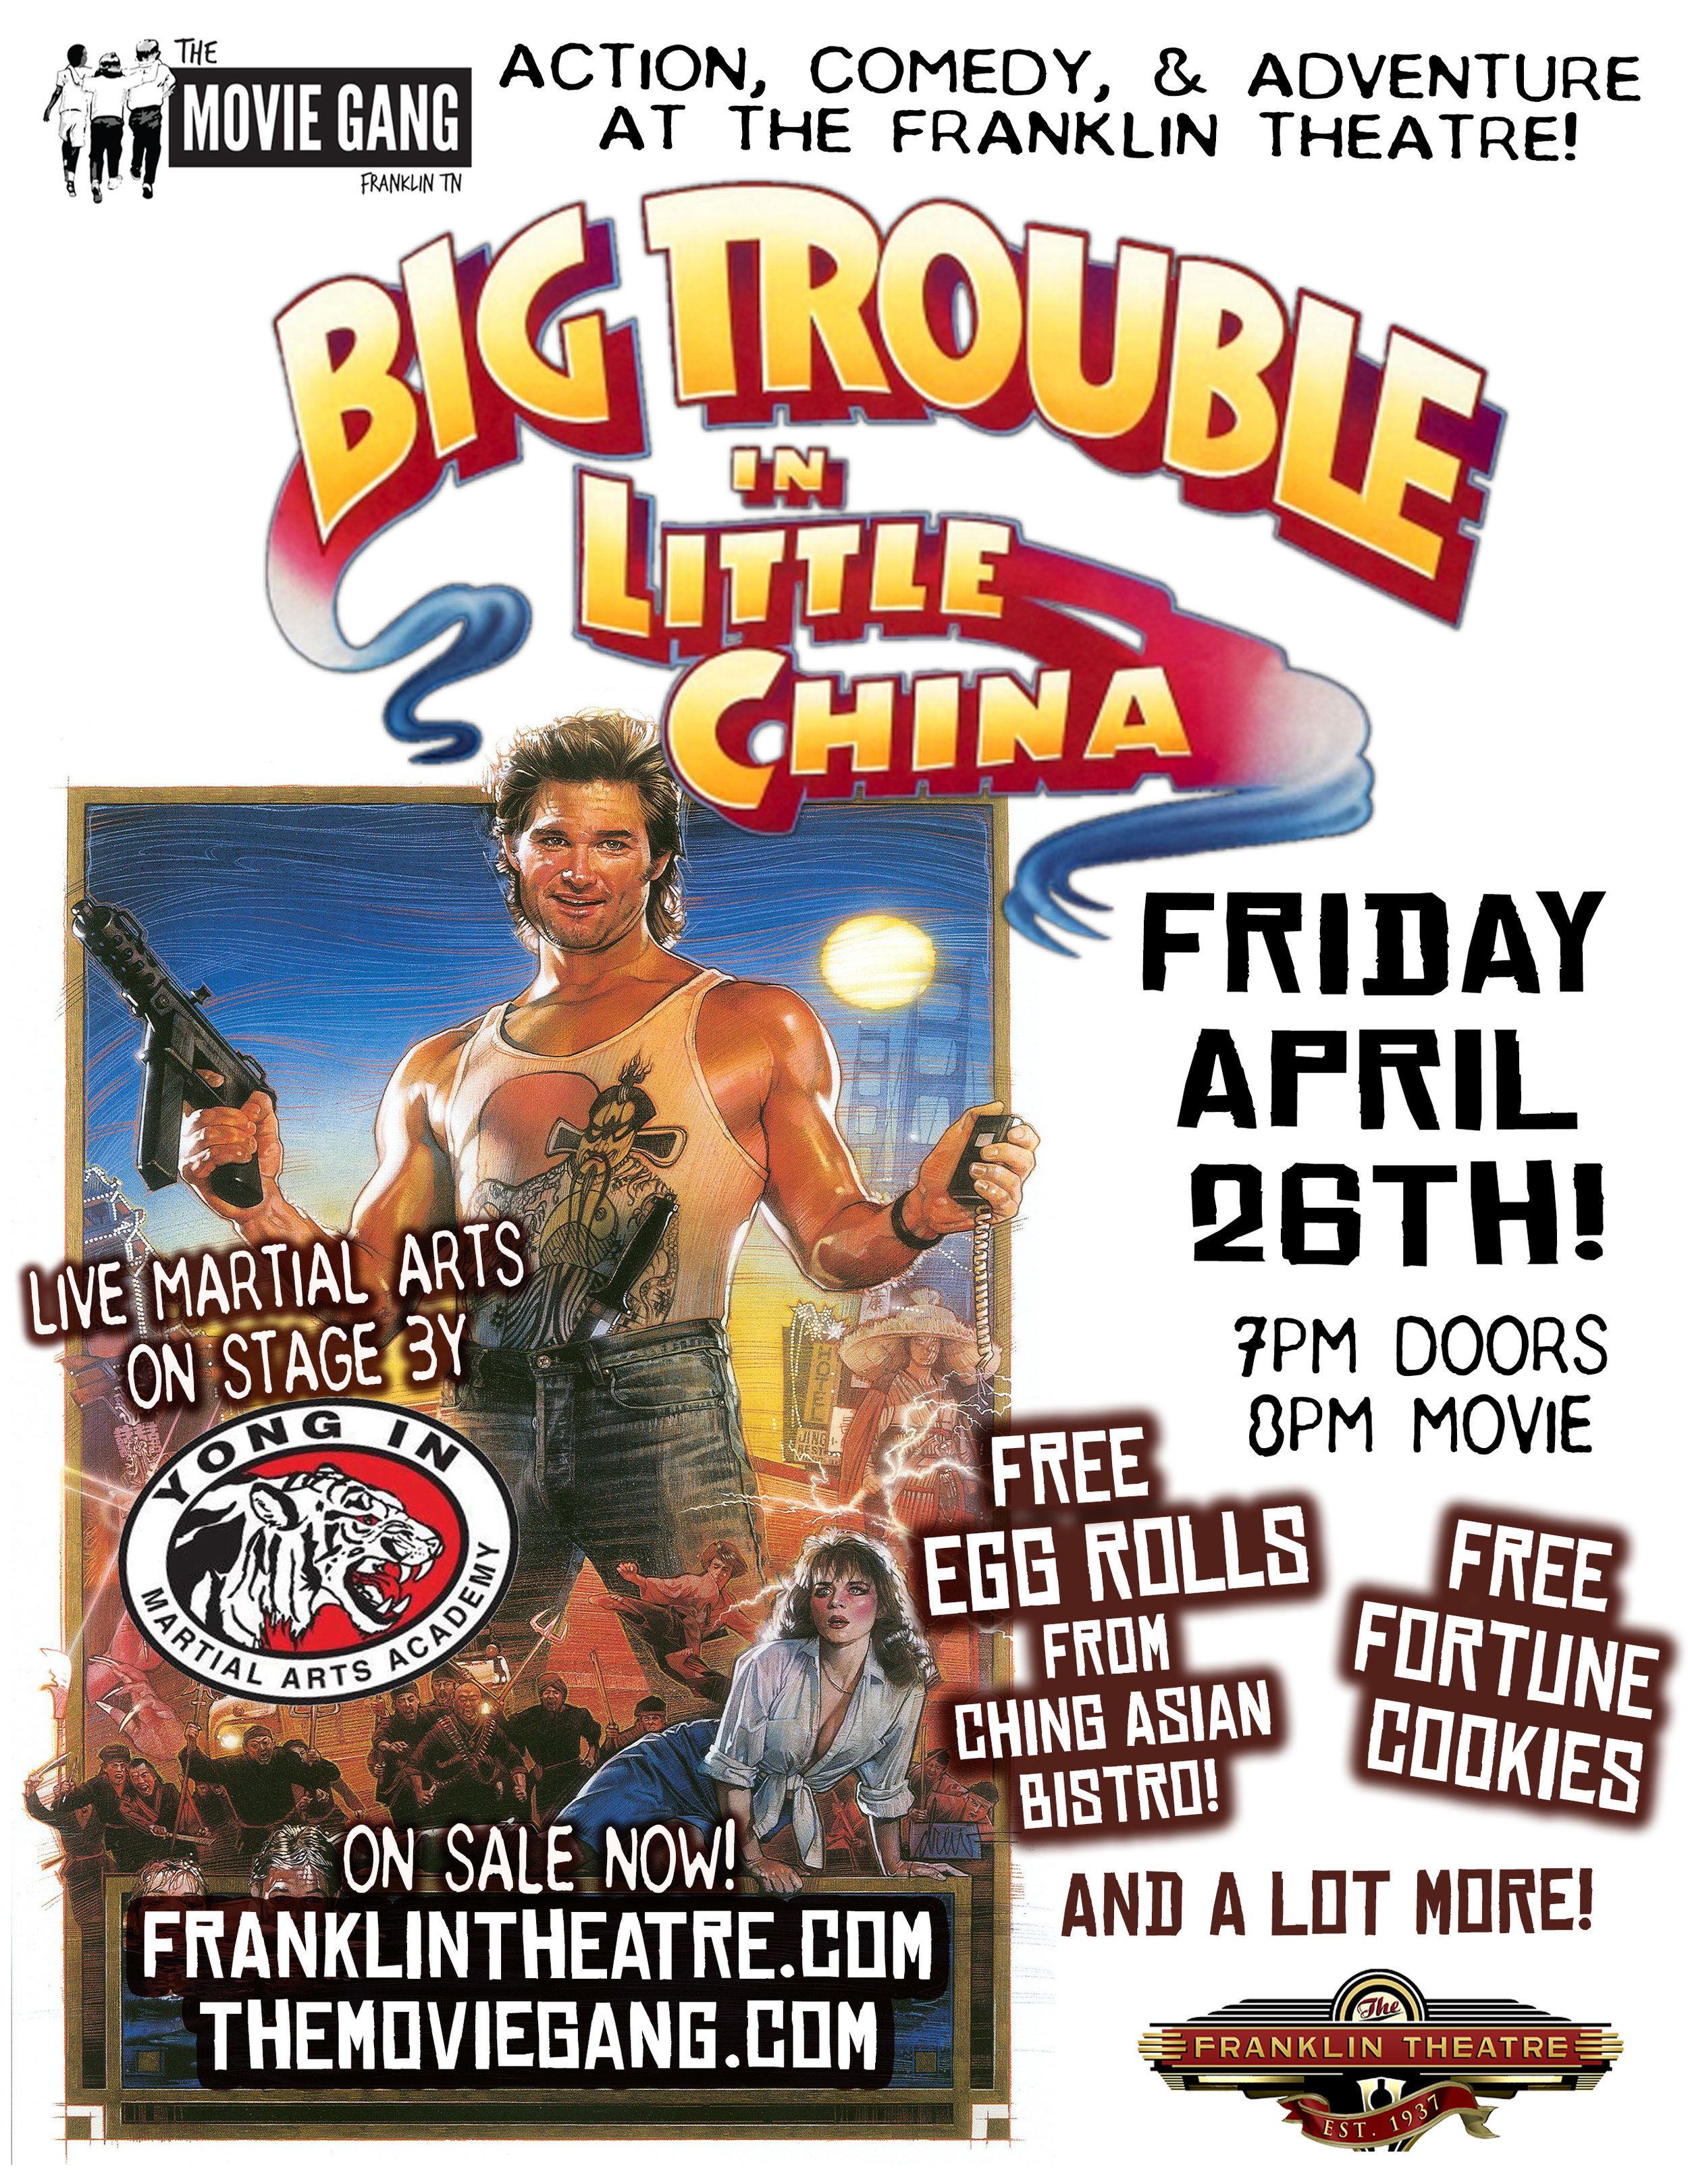 BIG TROUBLE FLYER FINAL.jpg